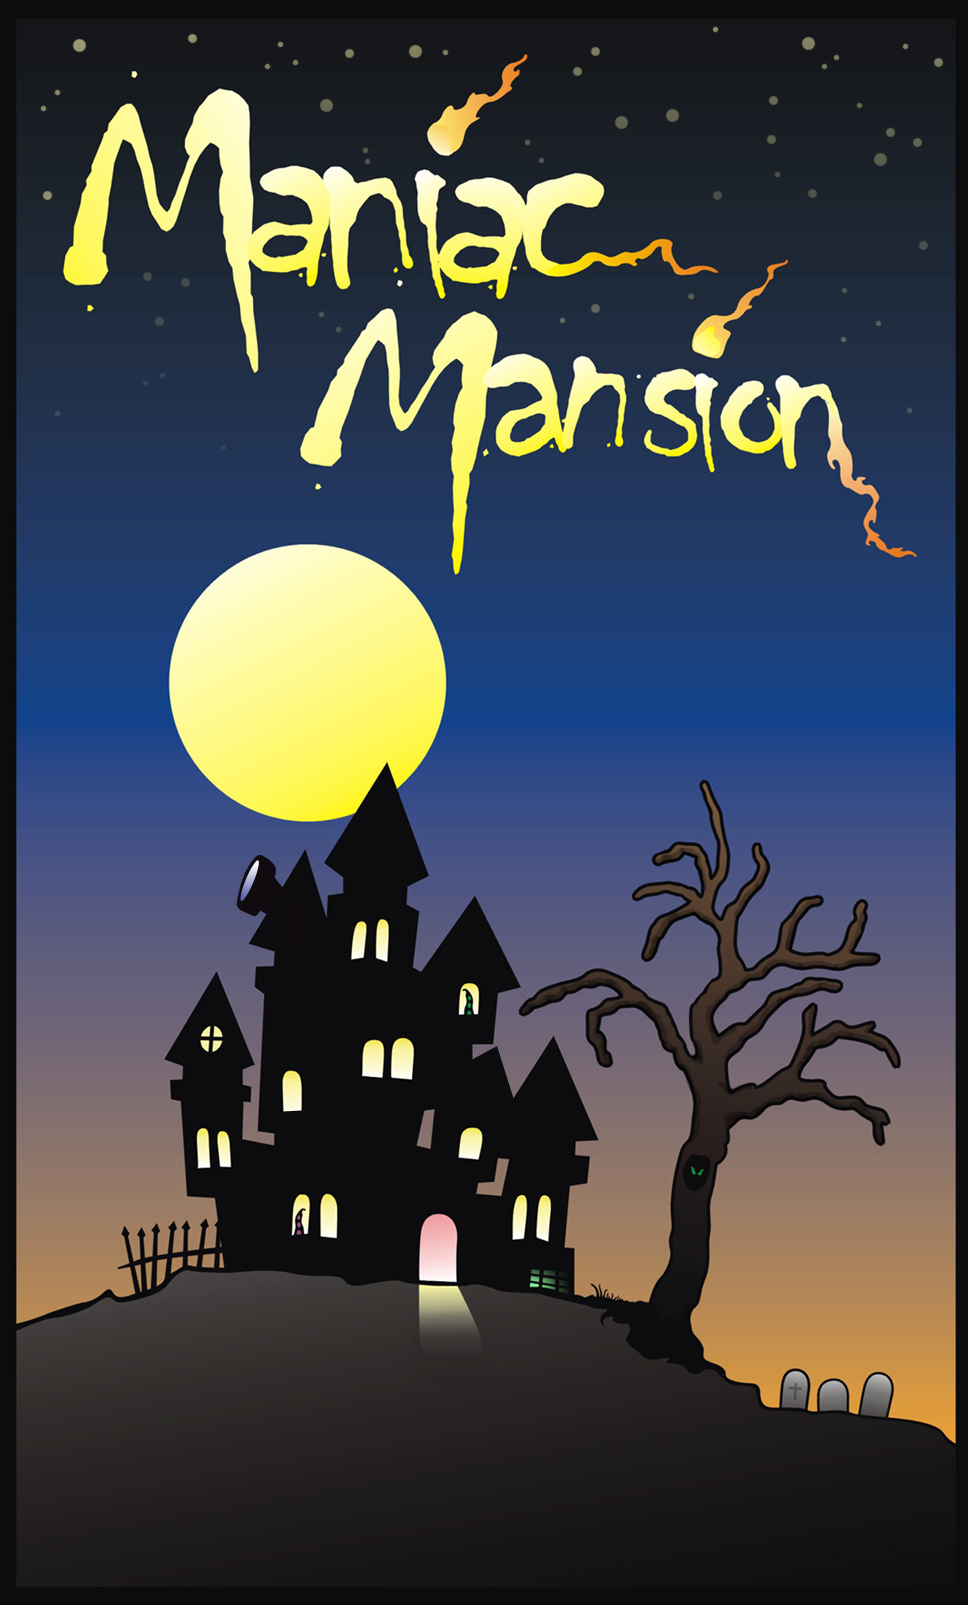 Maniac Mansion redux